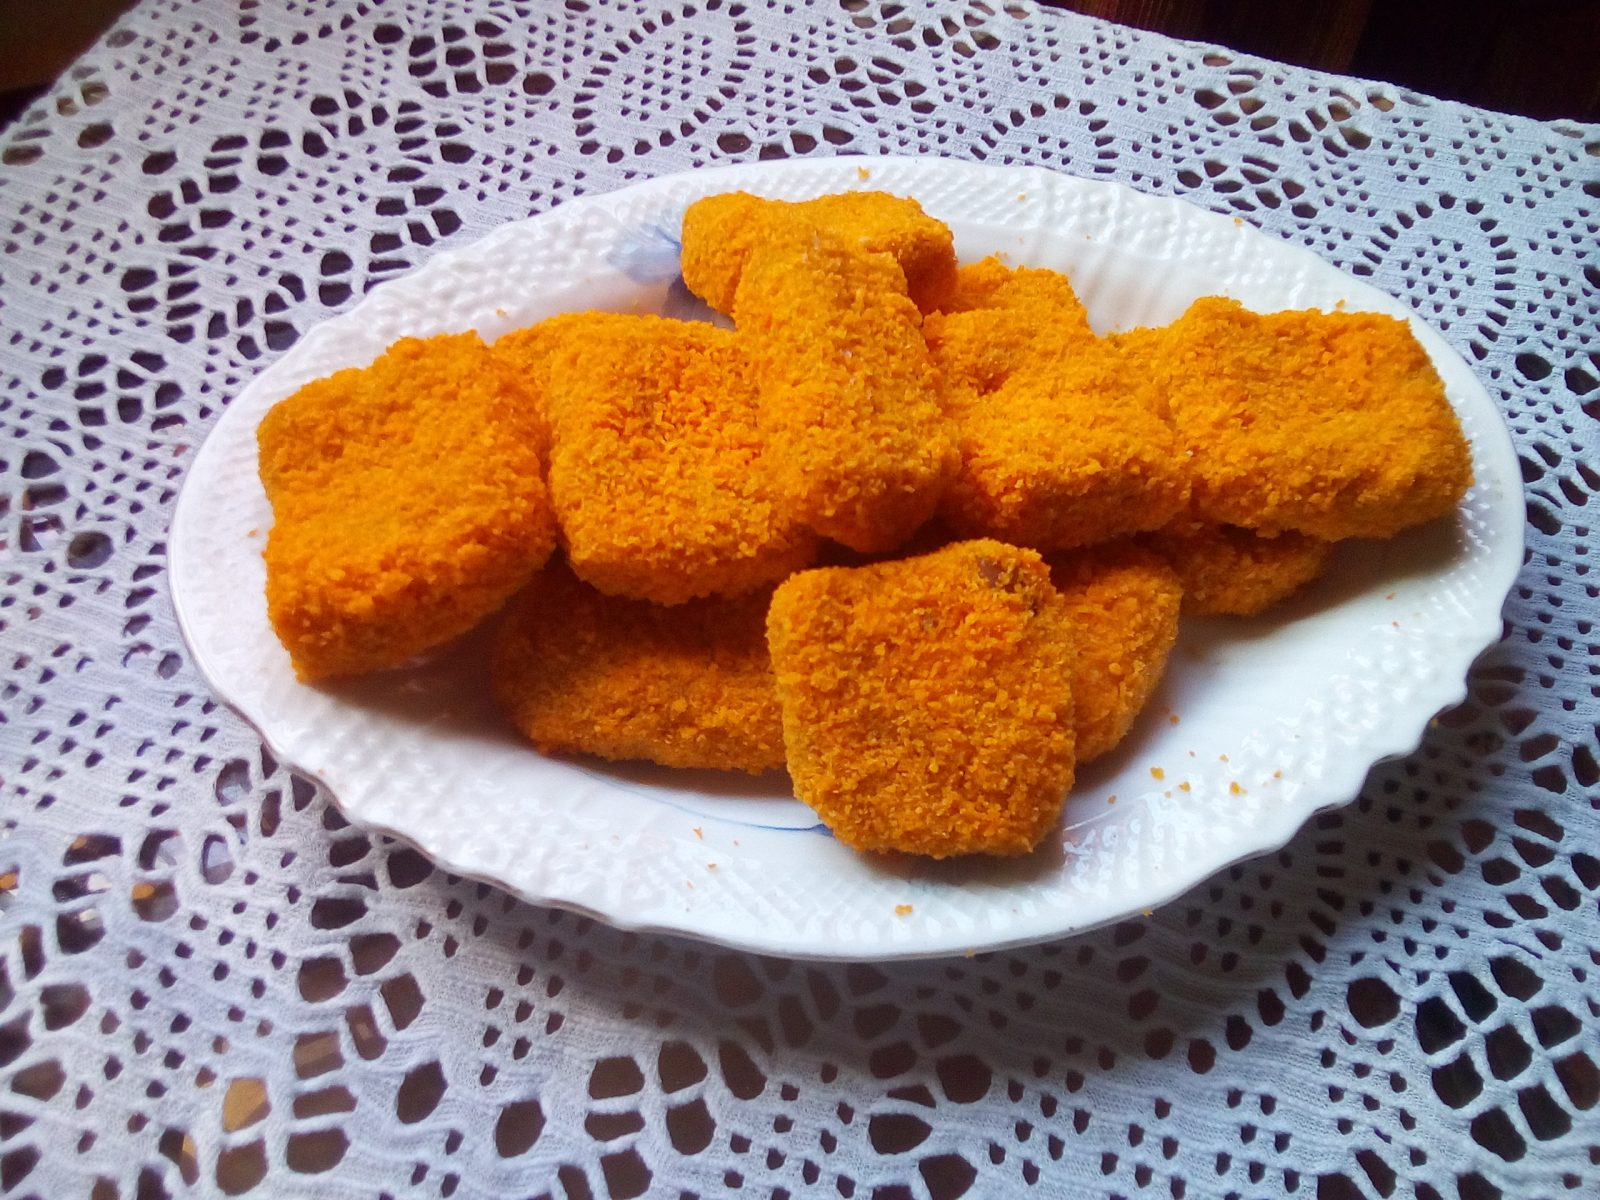 Chicken Nuggets from Sompurna Rannaghor